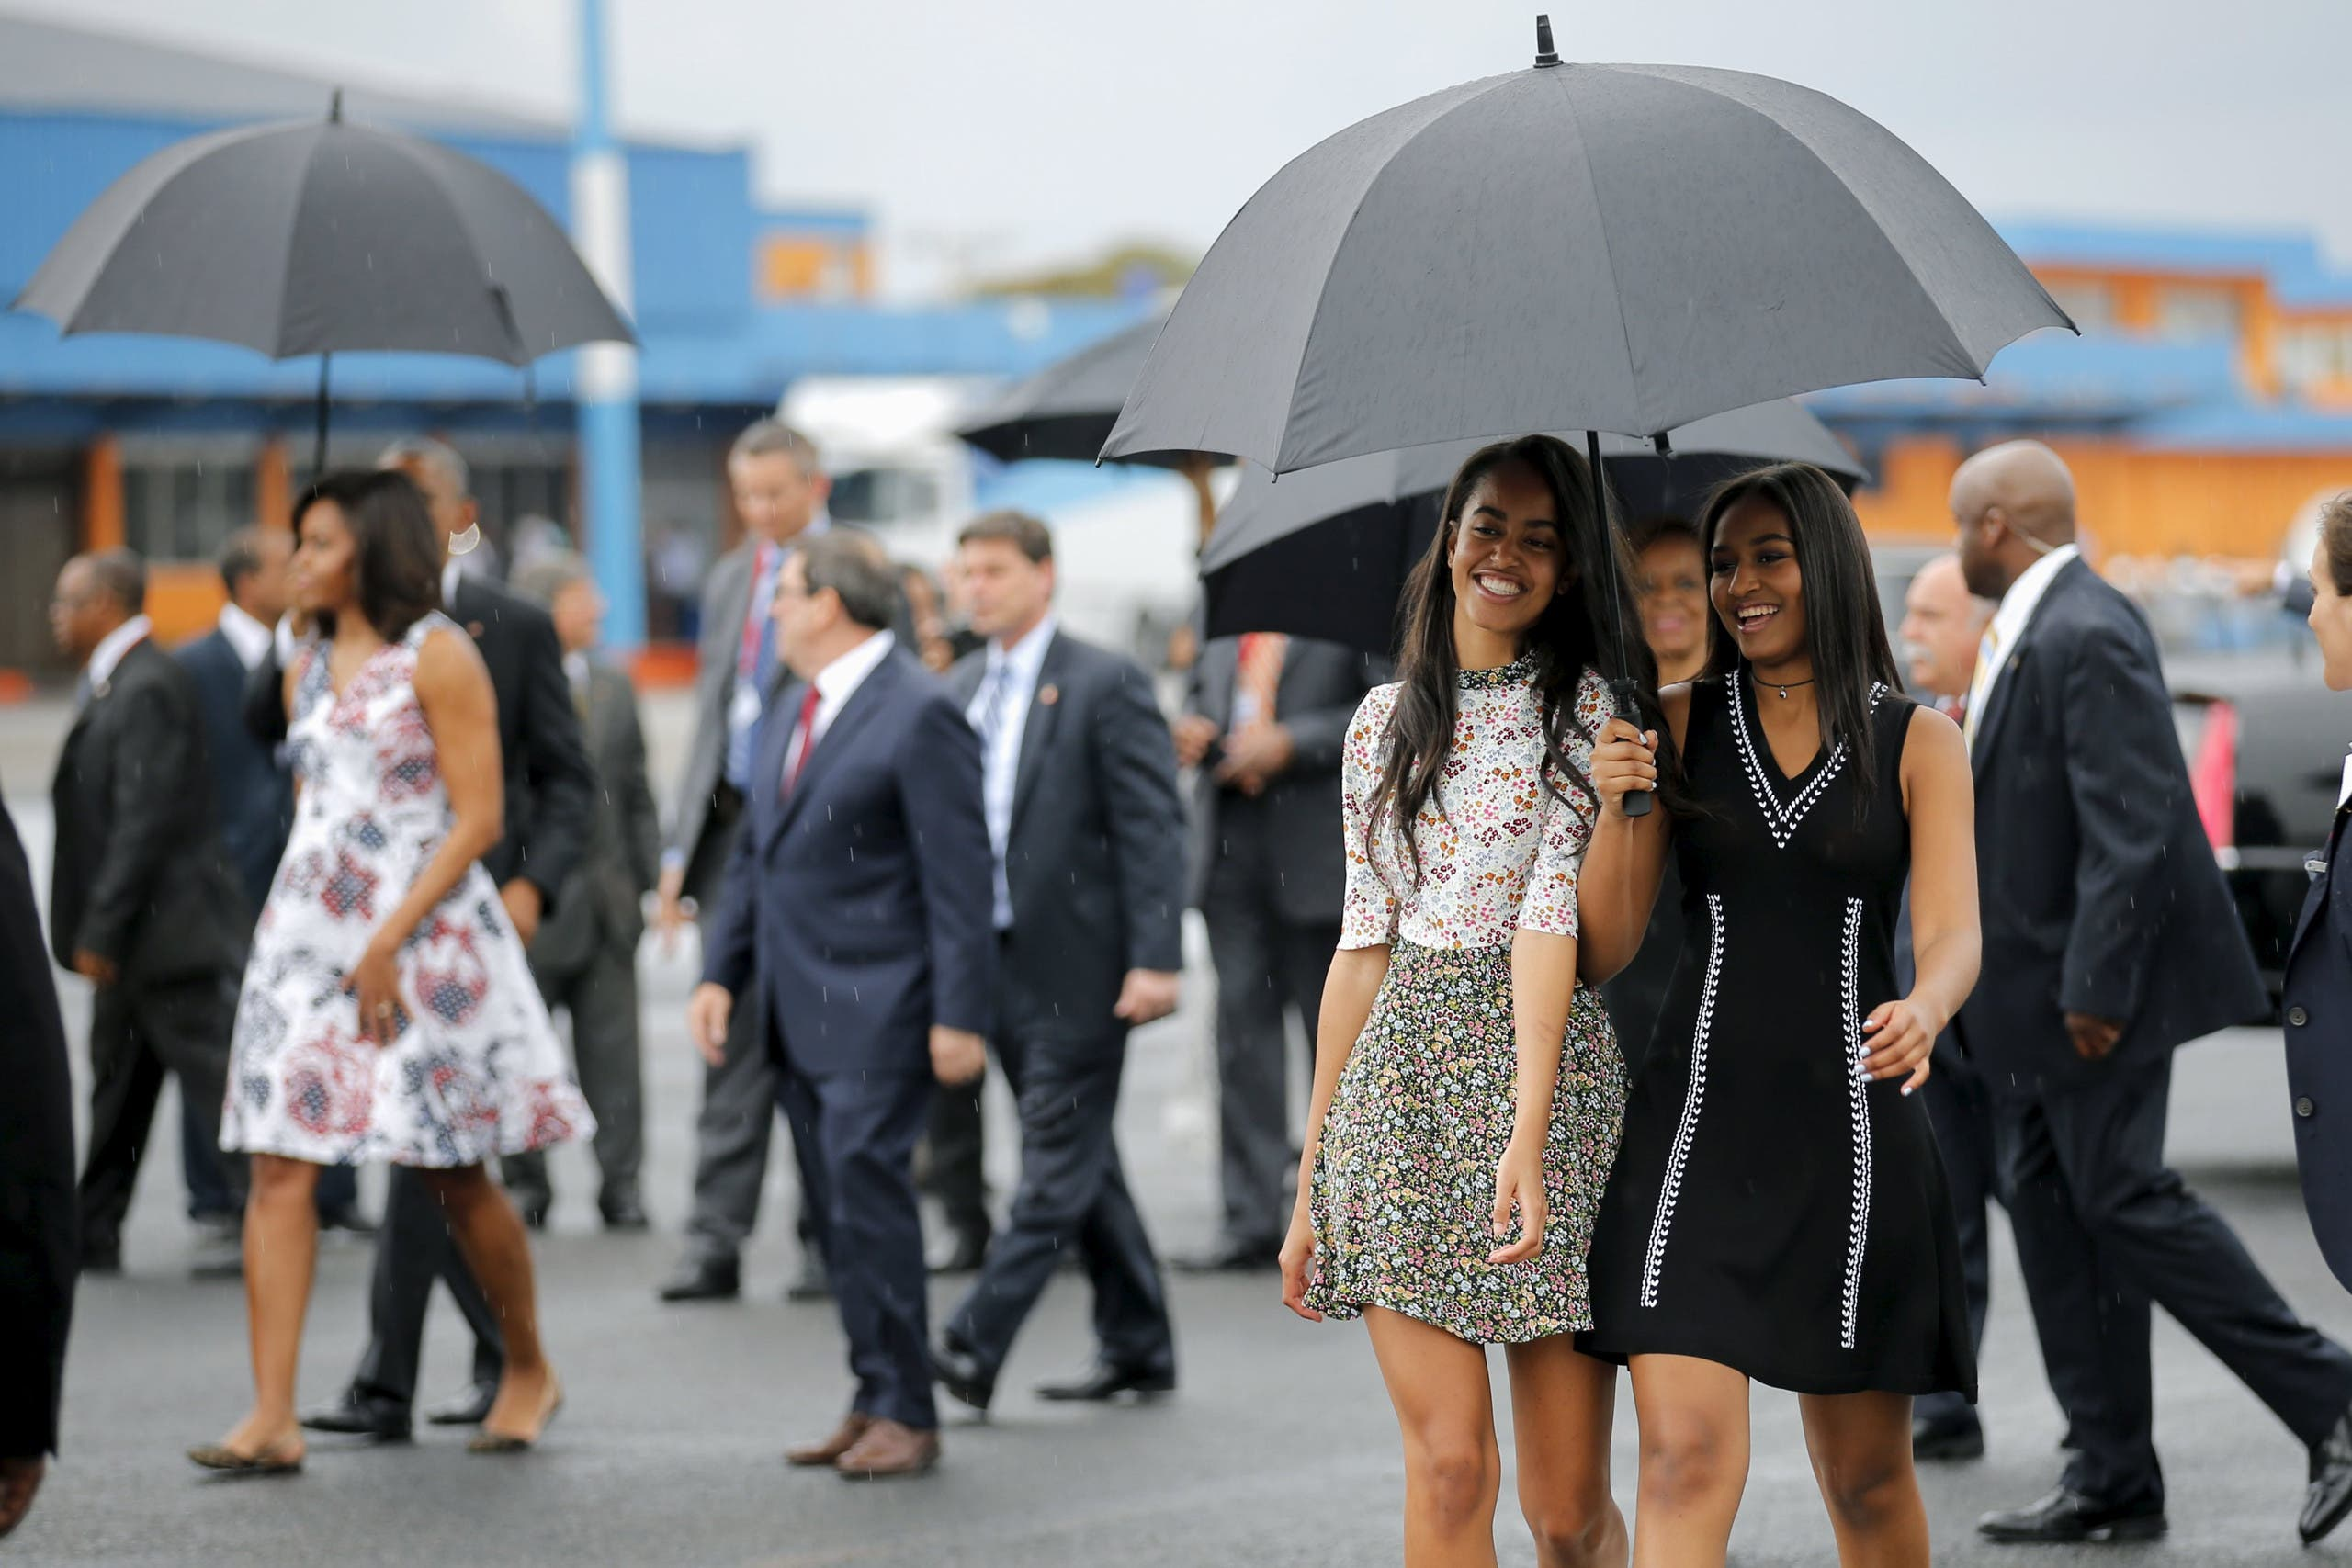 Obama's daughters Malia and Sasha arrive with their parents at the Jose Marti international airport at the start of a three-day visit to Cuba, in Havana. (Reuters)